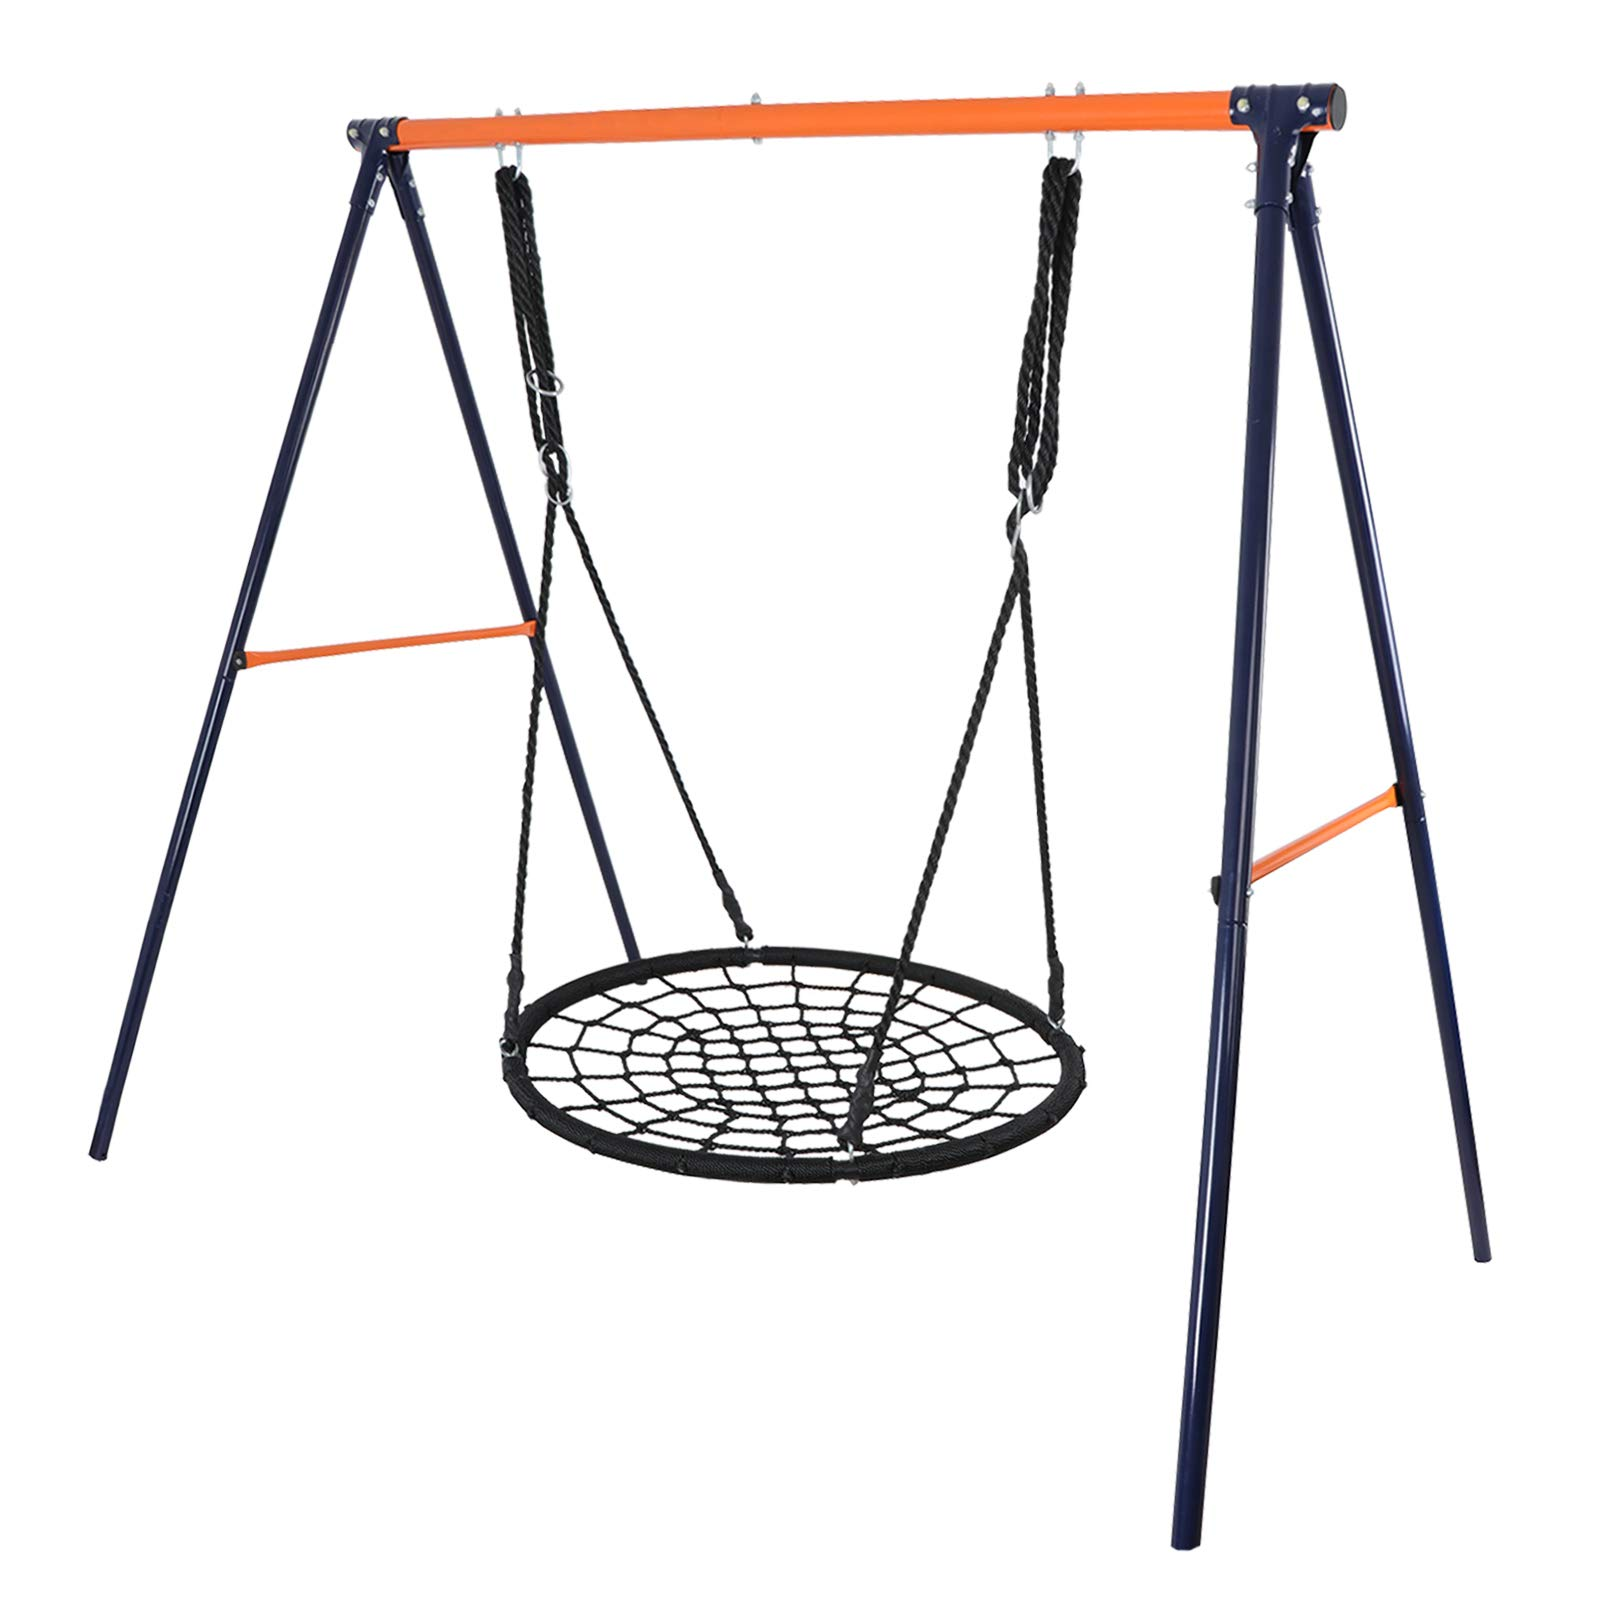 ZENY Swing Set - 24'' Spinner Web Tree Swing Nylon Rope + All Weather Steel A Swing Frame Stand,Great for Backyard Kids Play Fun